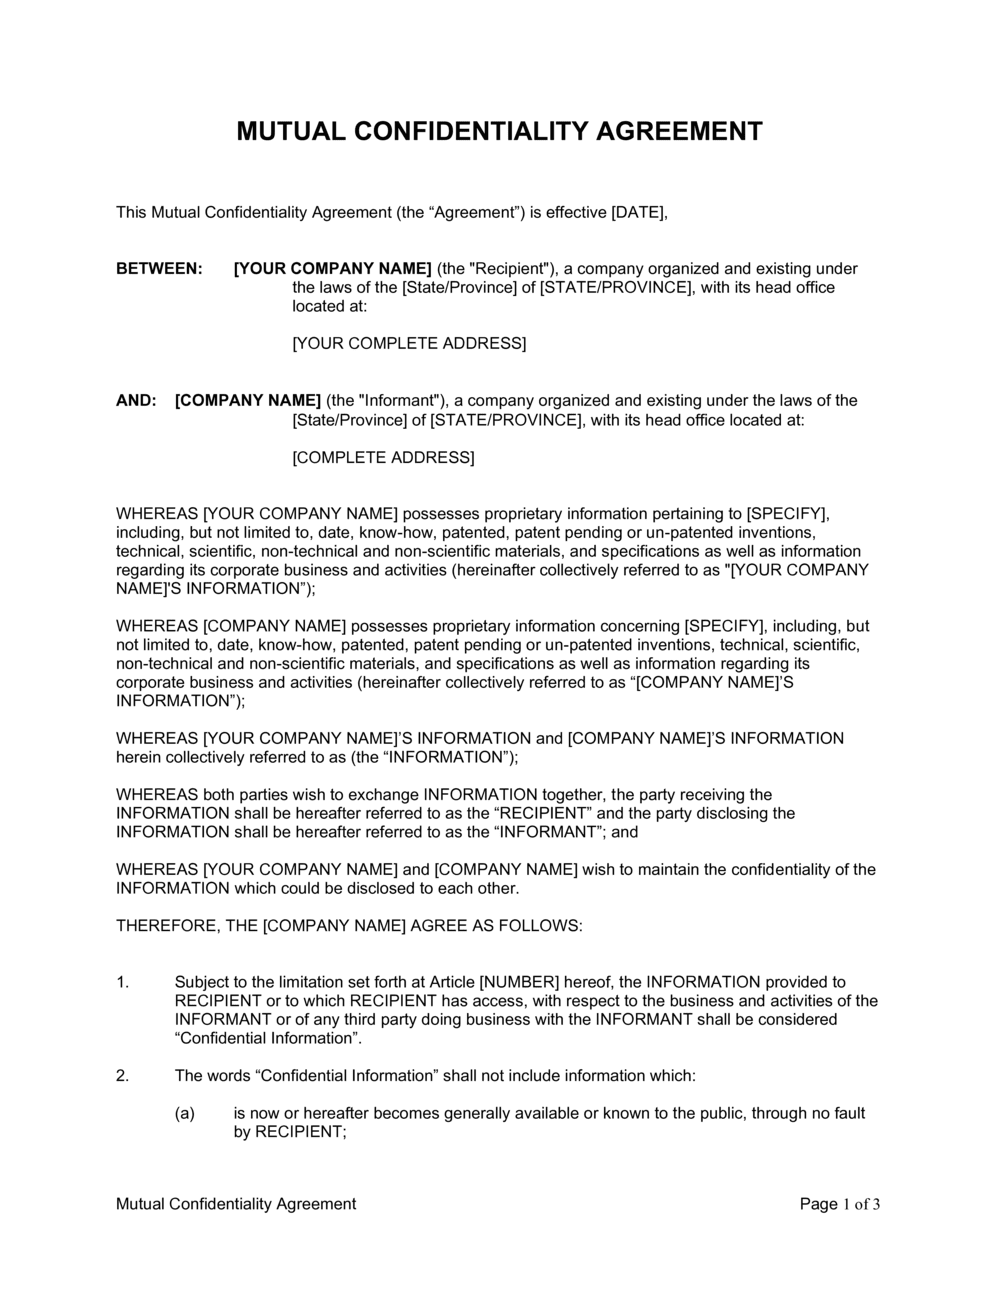 Business-in-a-Box's Mutual Confidentiality Agreement Template